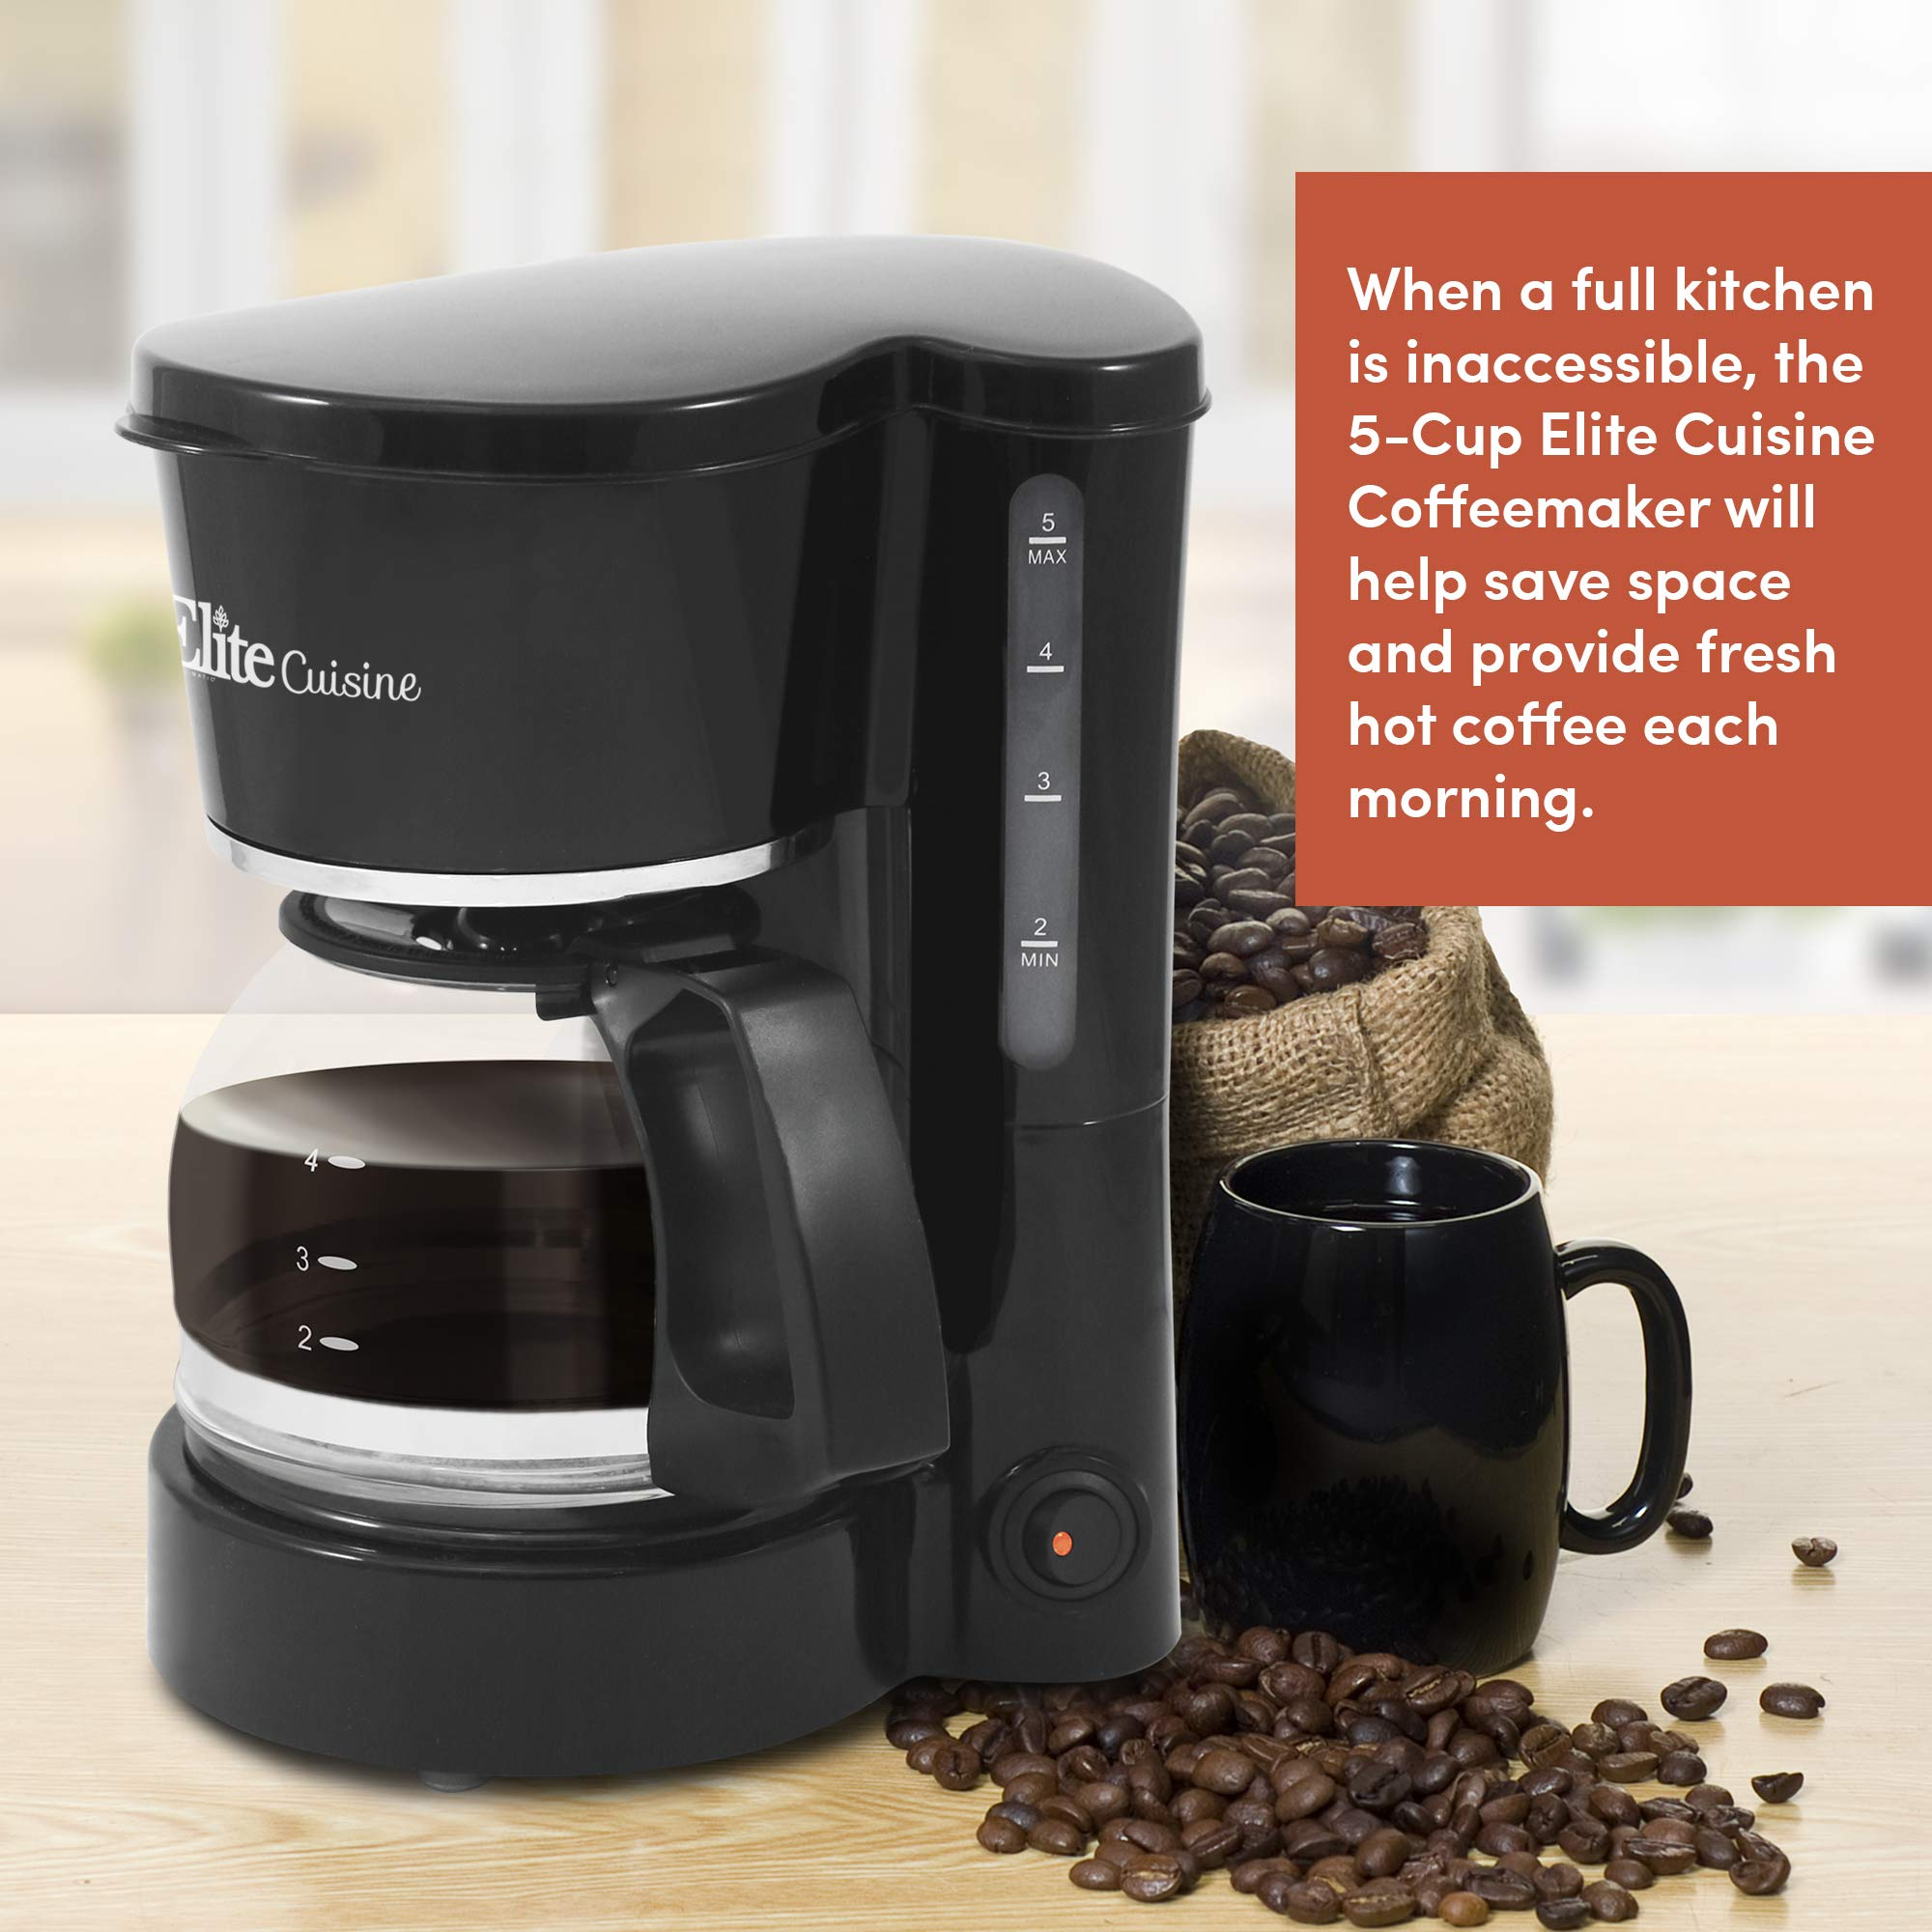 Elite Cuisine EHC-5055 Automatic Brew & Drip Coffee Maker with Pause N Serve Reusable Filter, On/Off Switch, Water Level Indicator, 5 Cup Capacity, Black by Maxi-Matic (Image #4)